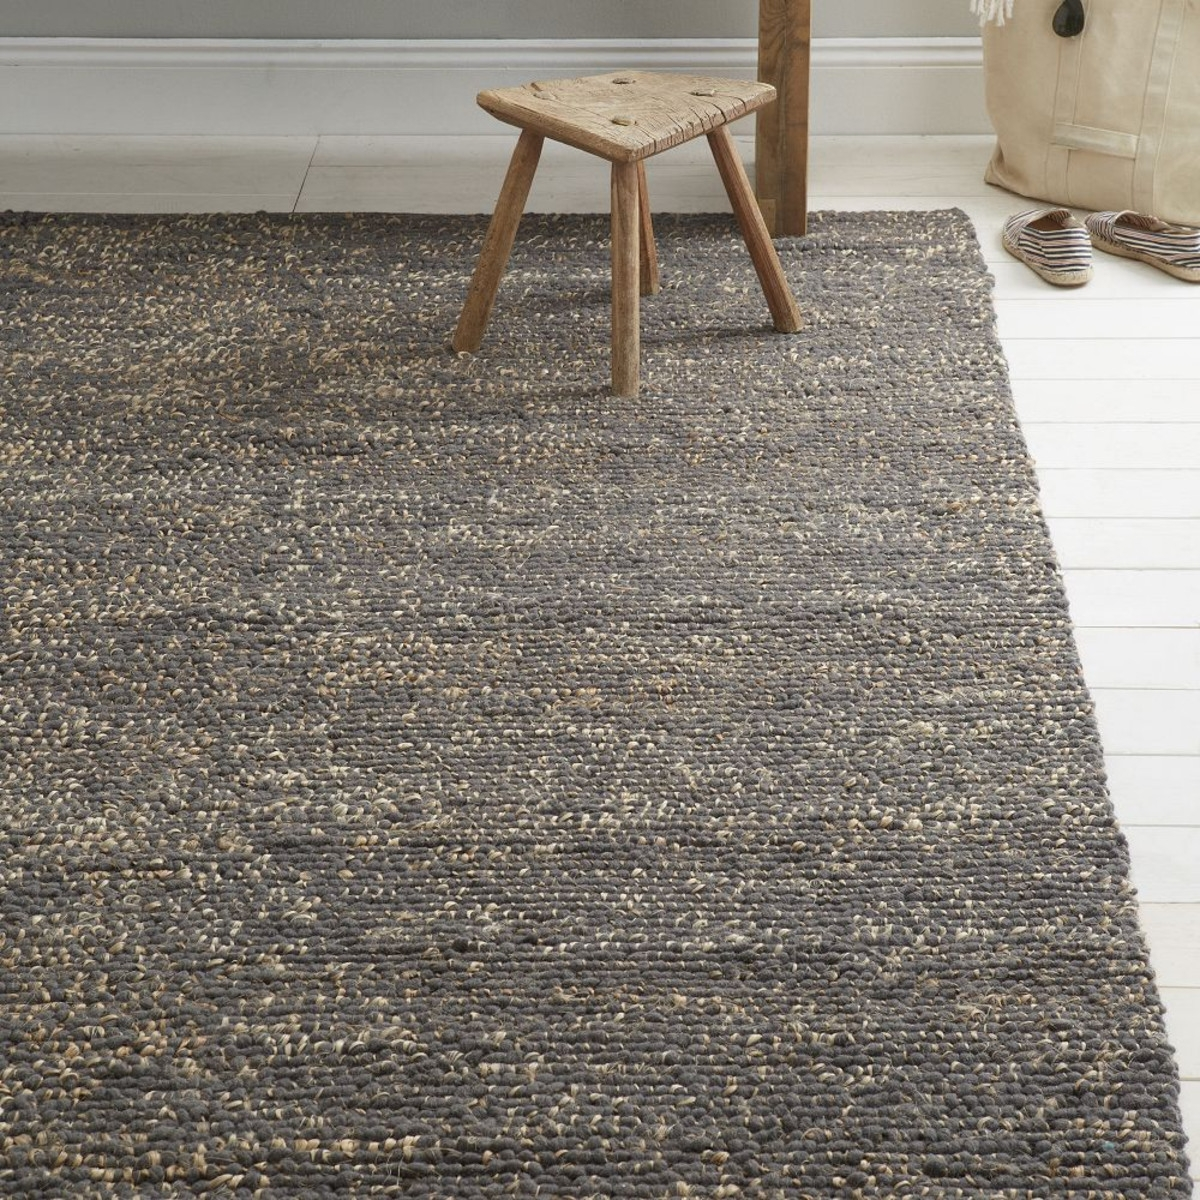 West Elm Pebble Rug Simplistic Interior And Mini Jute Wool Tikspor Intended For Jute And Wool Area Rugs (View 6 of 7)